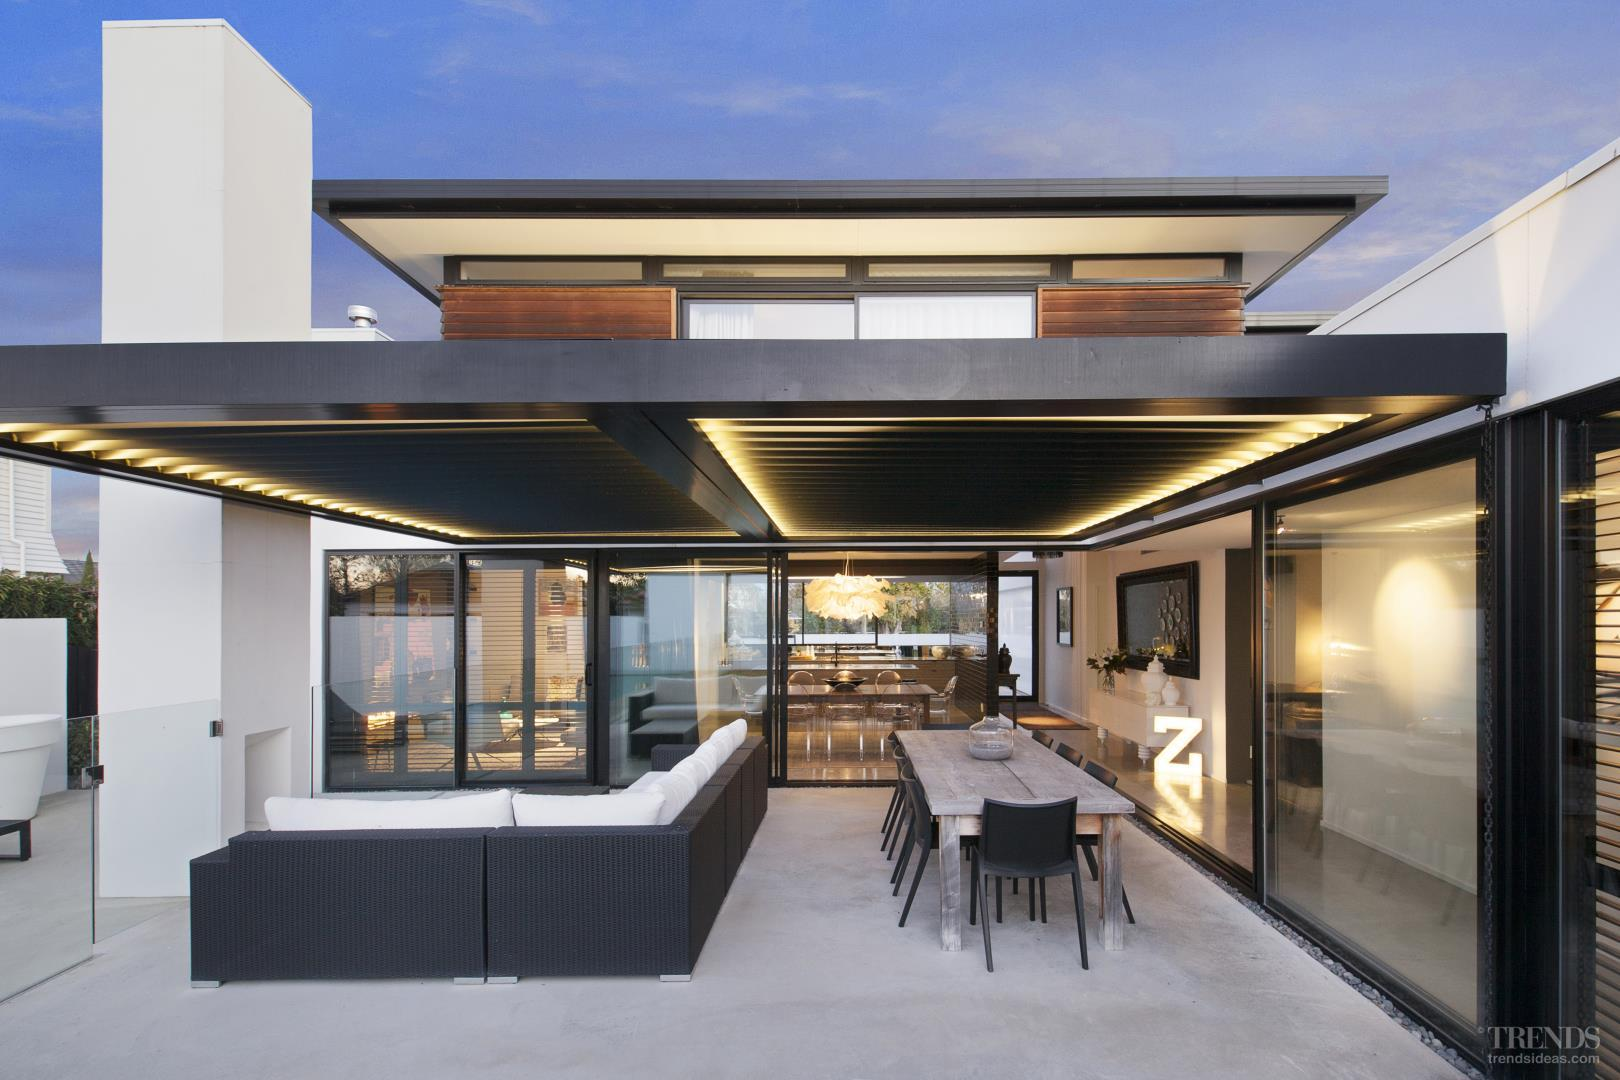 contemporary home in clean lined geometric forms has great